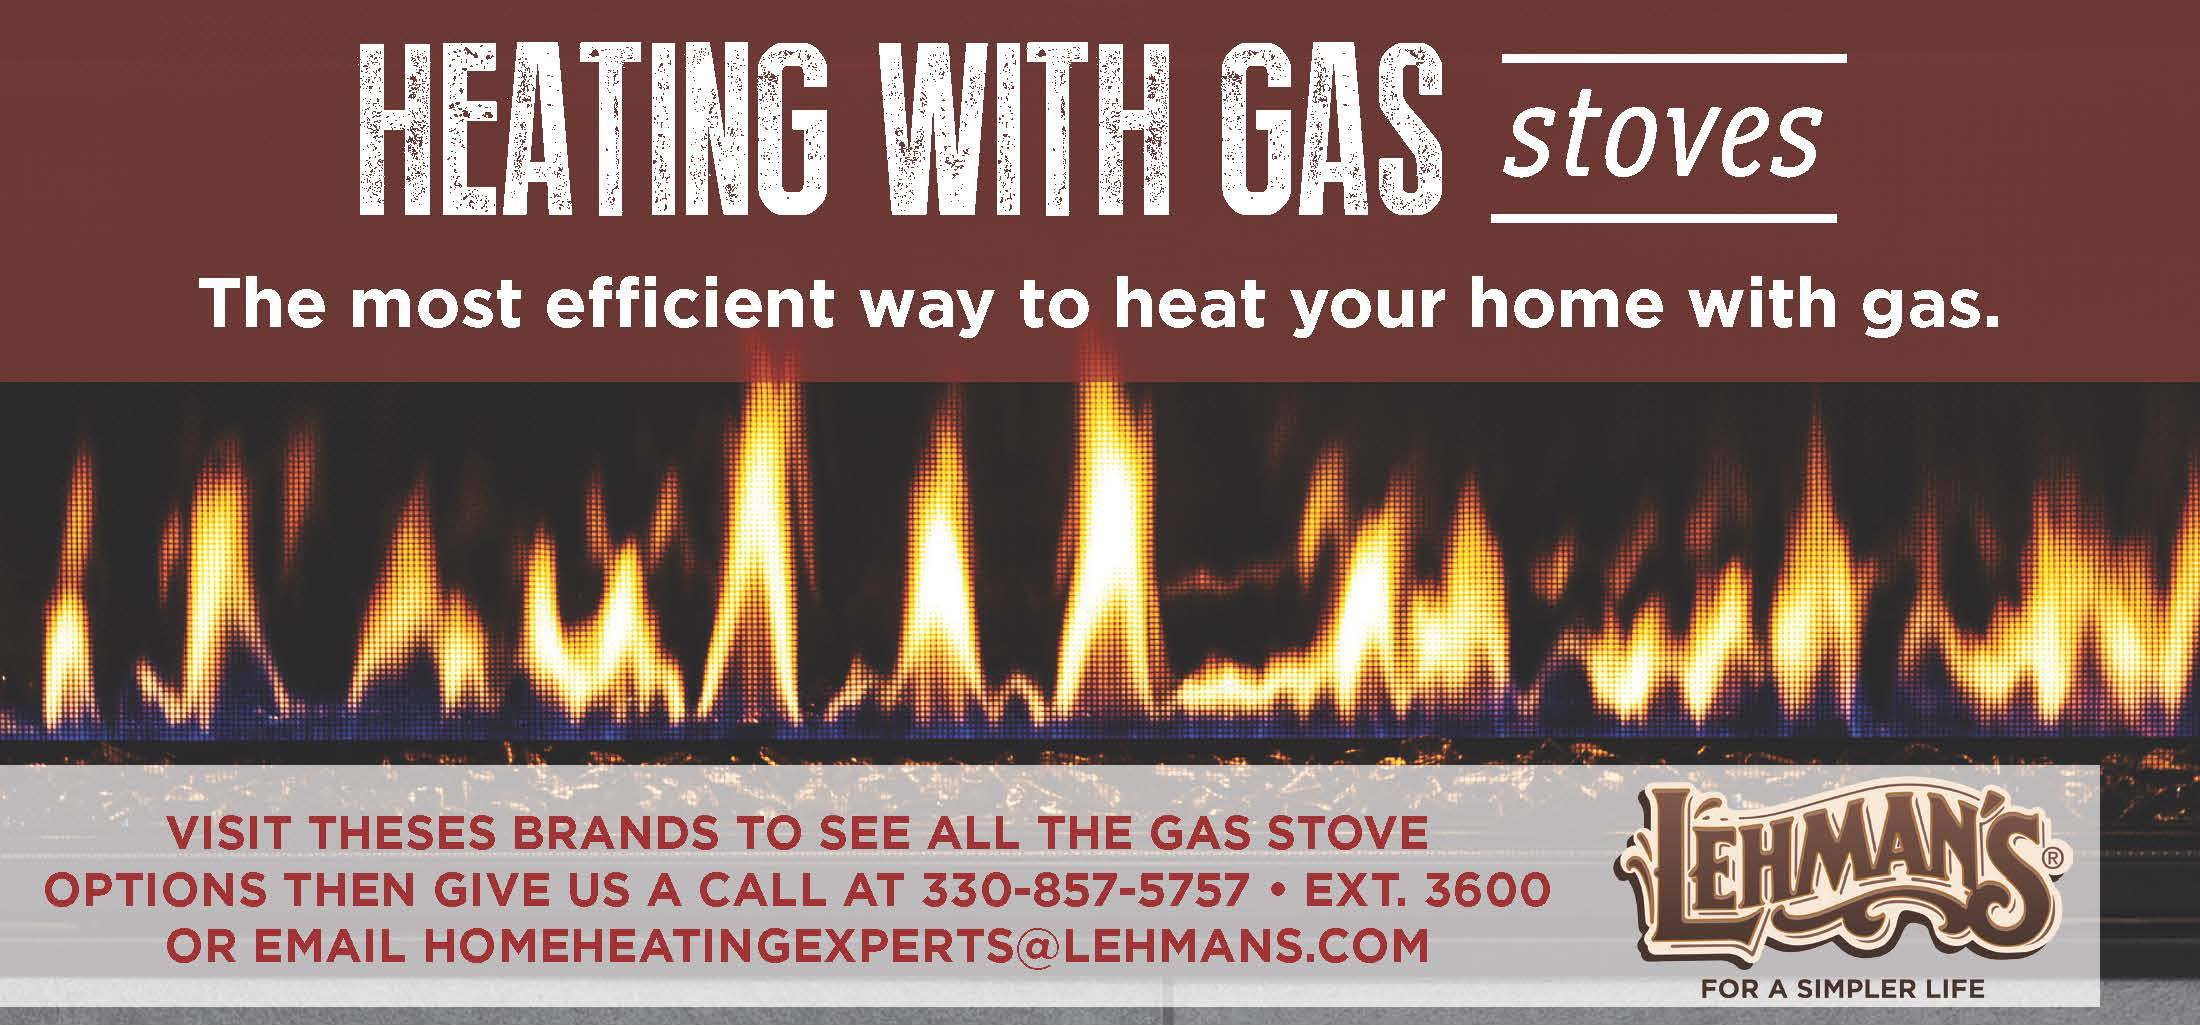 Heating with Gas Stoves